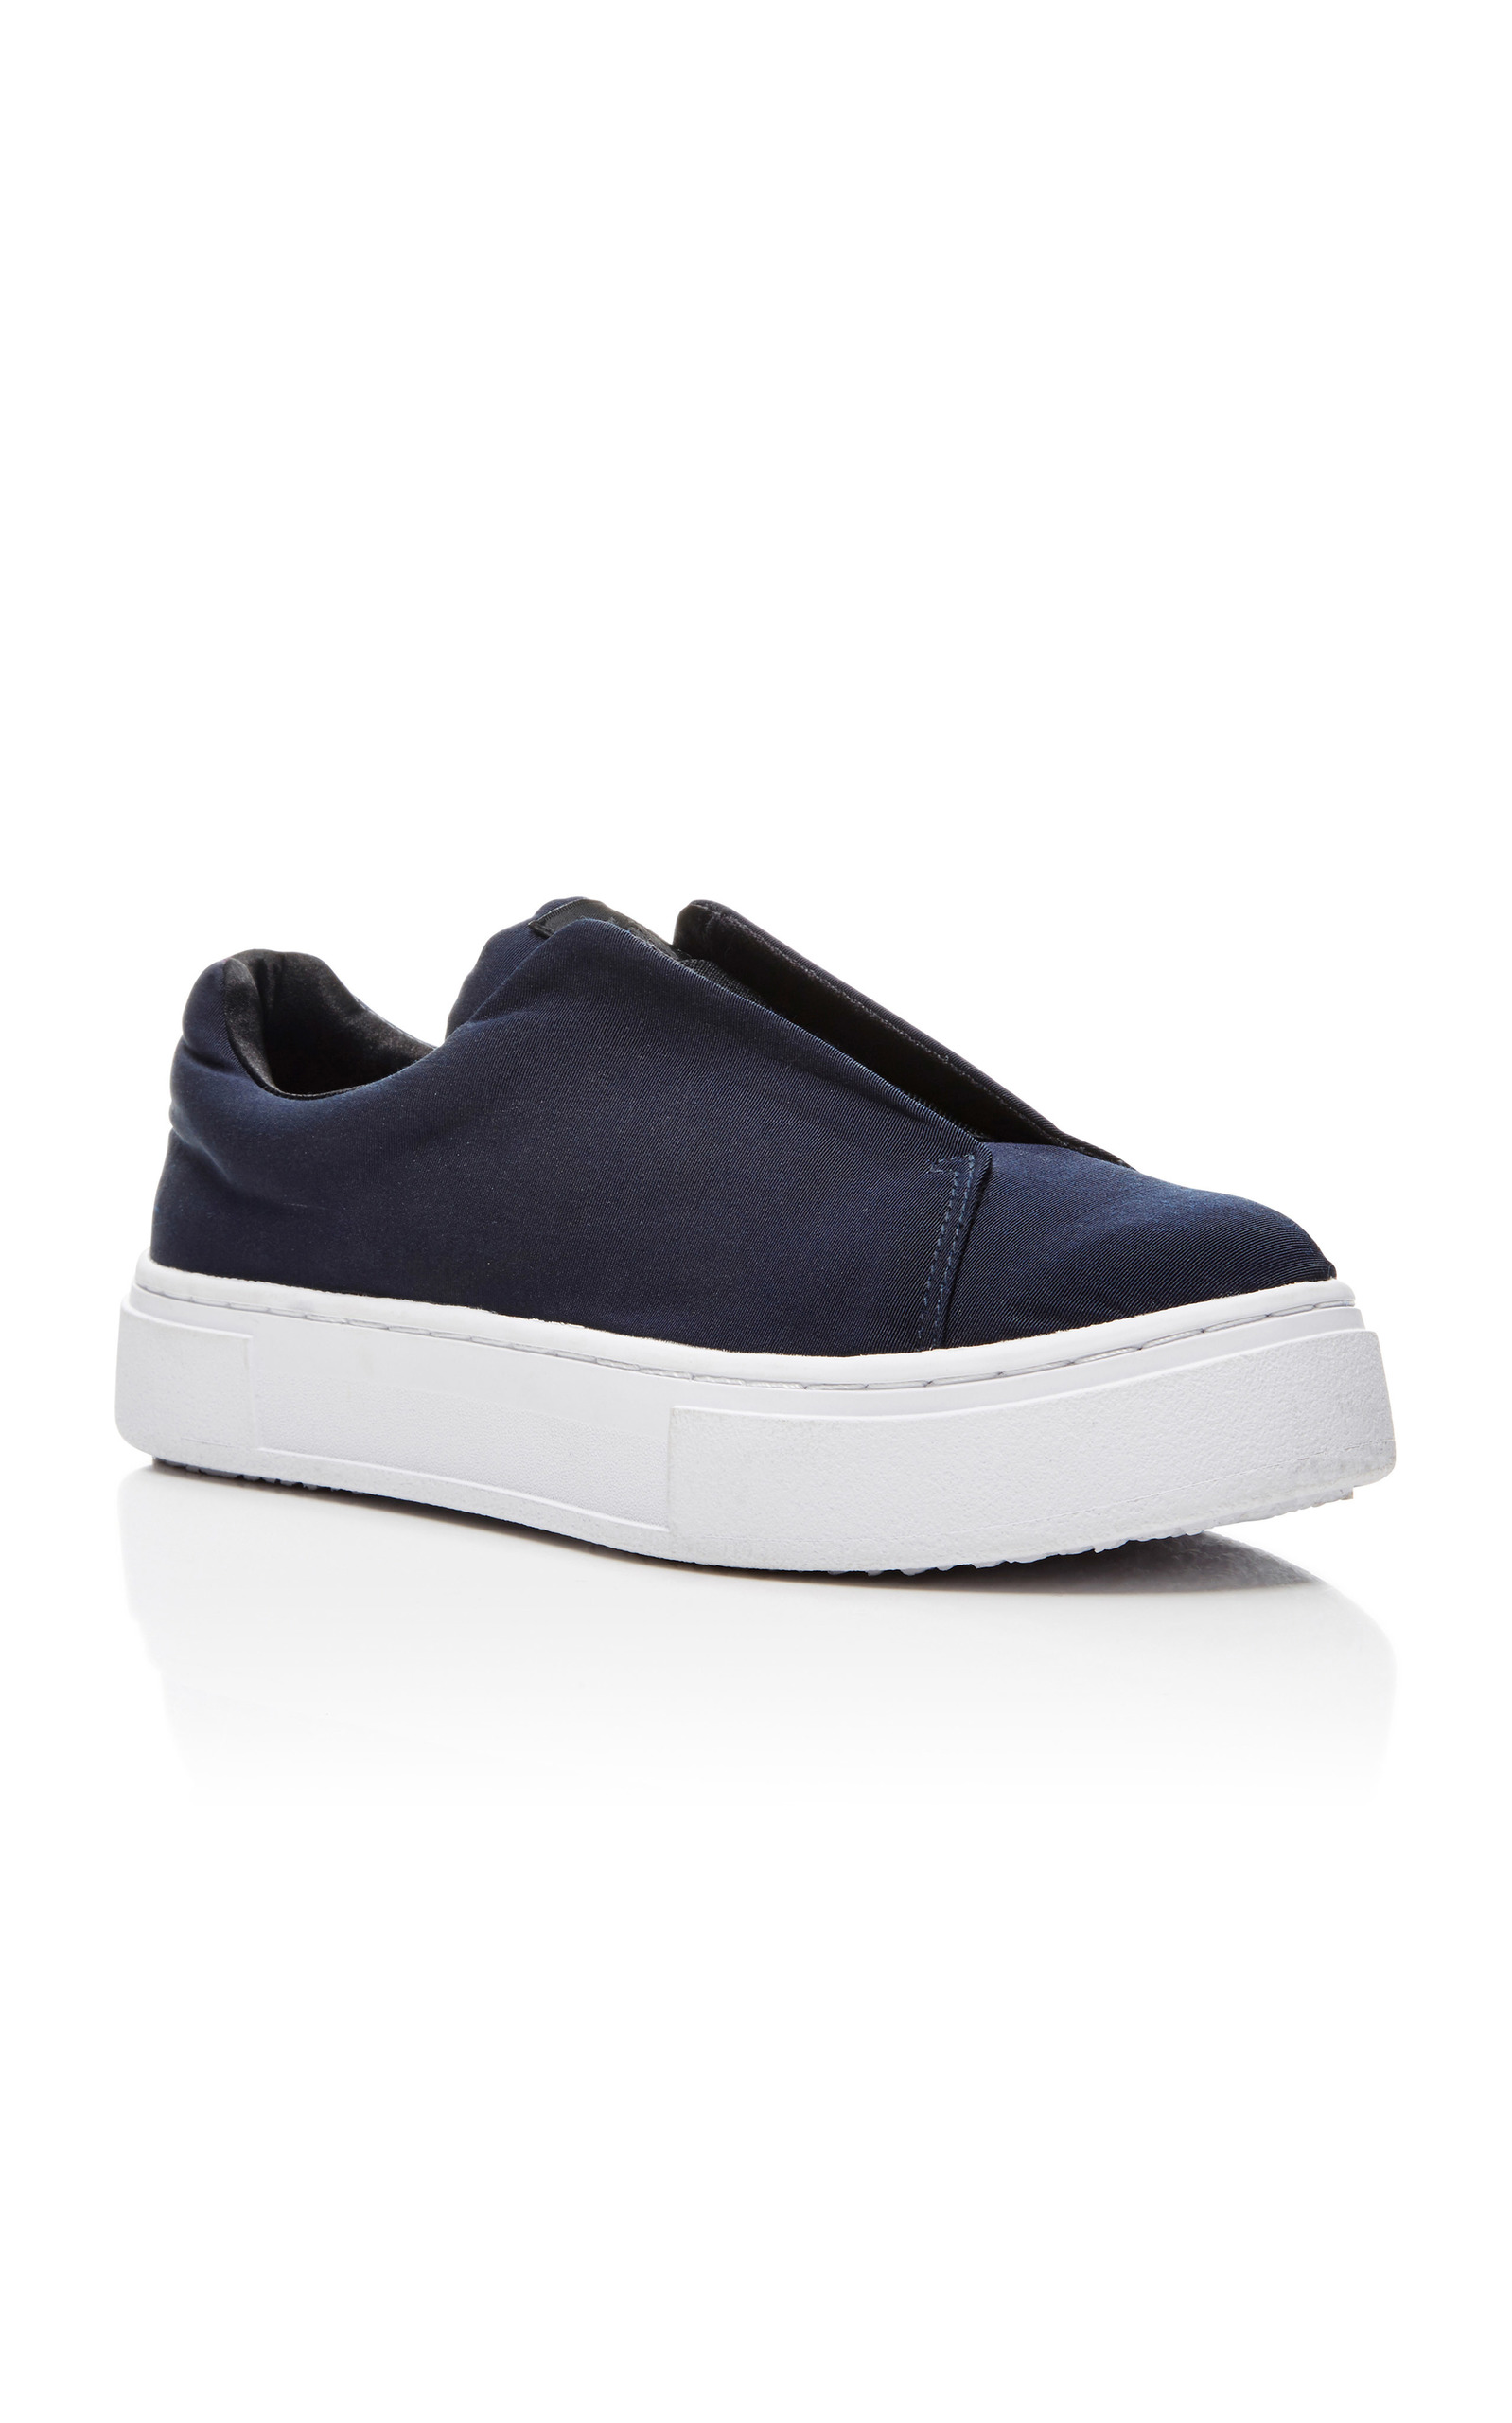 Alexander Wang Navy Canvas Doja Slip-On Sneakers